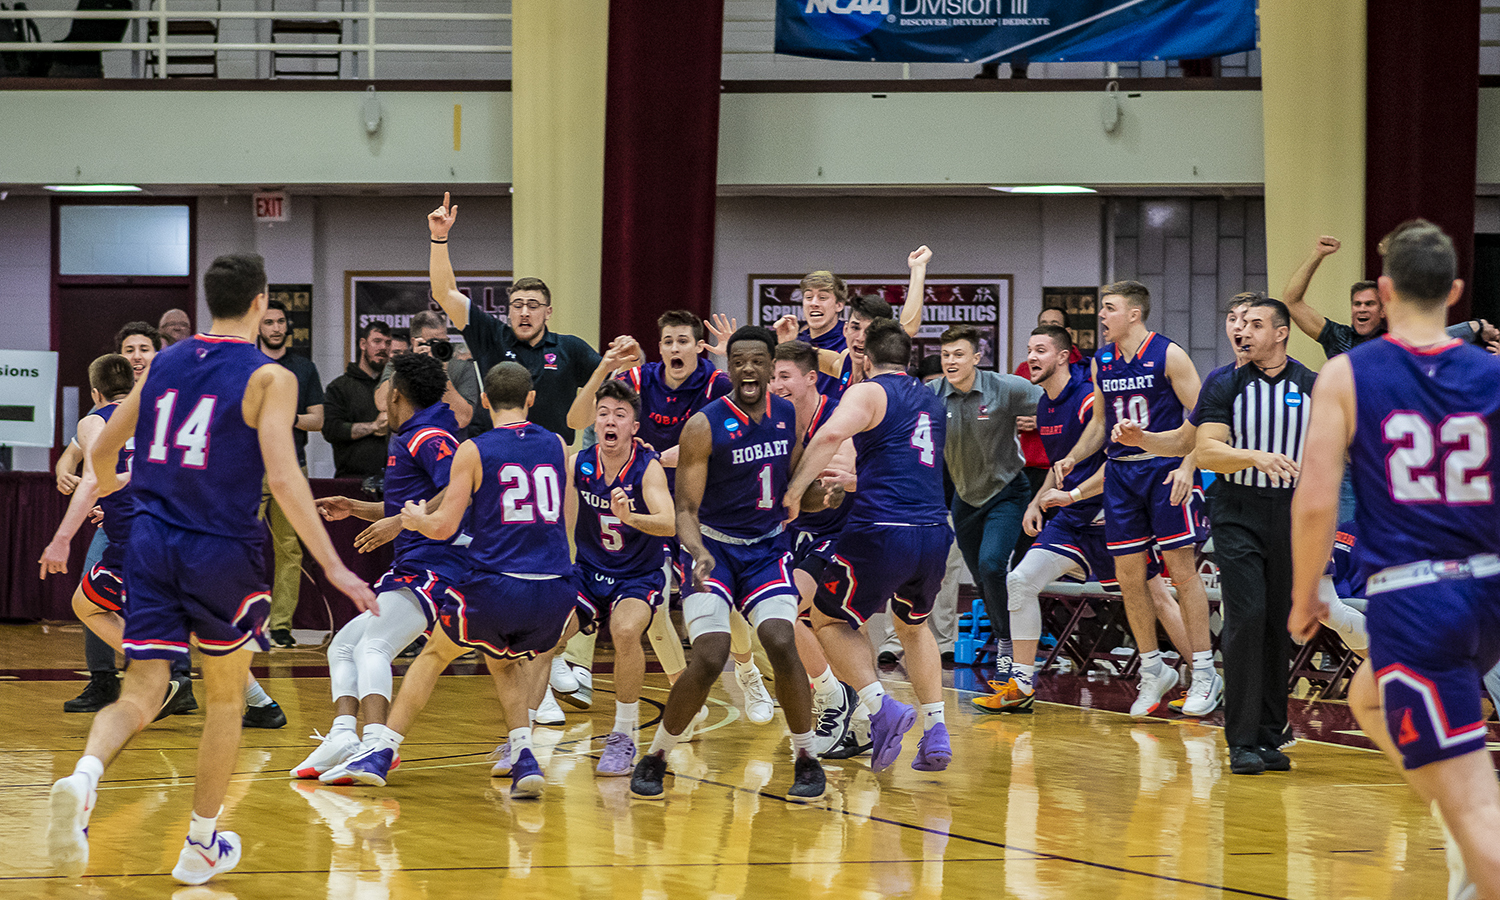 Hobart rallied from a 13-point deficit to defeat No. 17 Springfield 62-61 and advance to the third round of the NCAA Division III Men's Basketball Championship for the first time in program history. Dan Masino '21 hit a layup with two seconds remaining to give the Statesmen the lead and Tucker Lescoe '20 stole the Pride's inbounds pass to seal the victory.